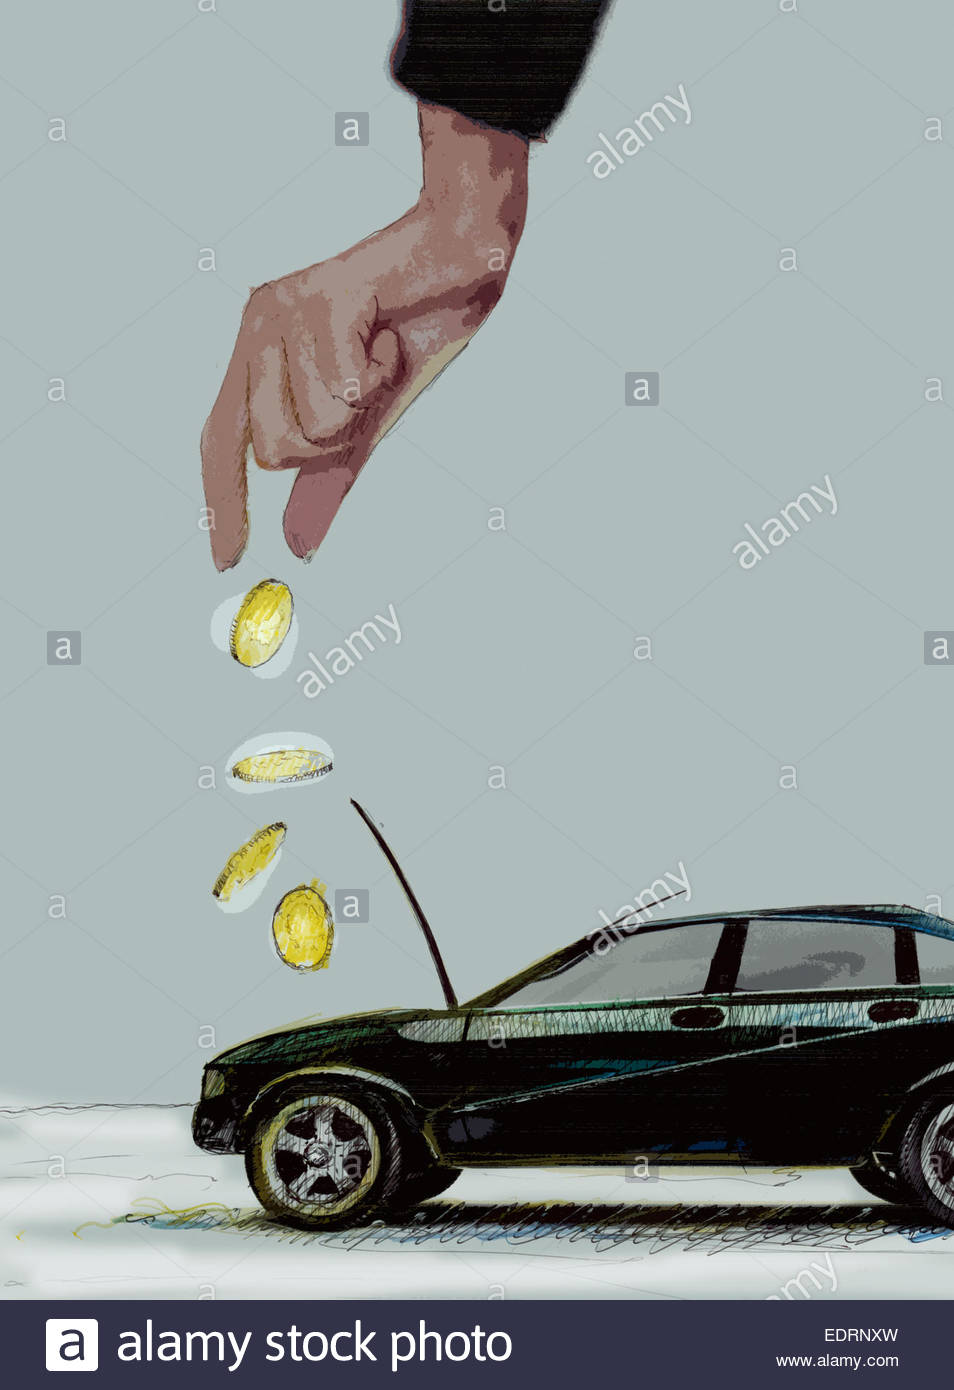 Hand dropping coins into car engine - Stock Image